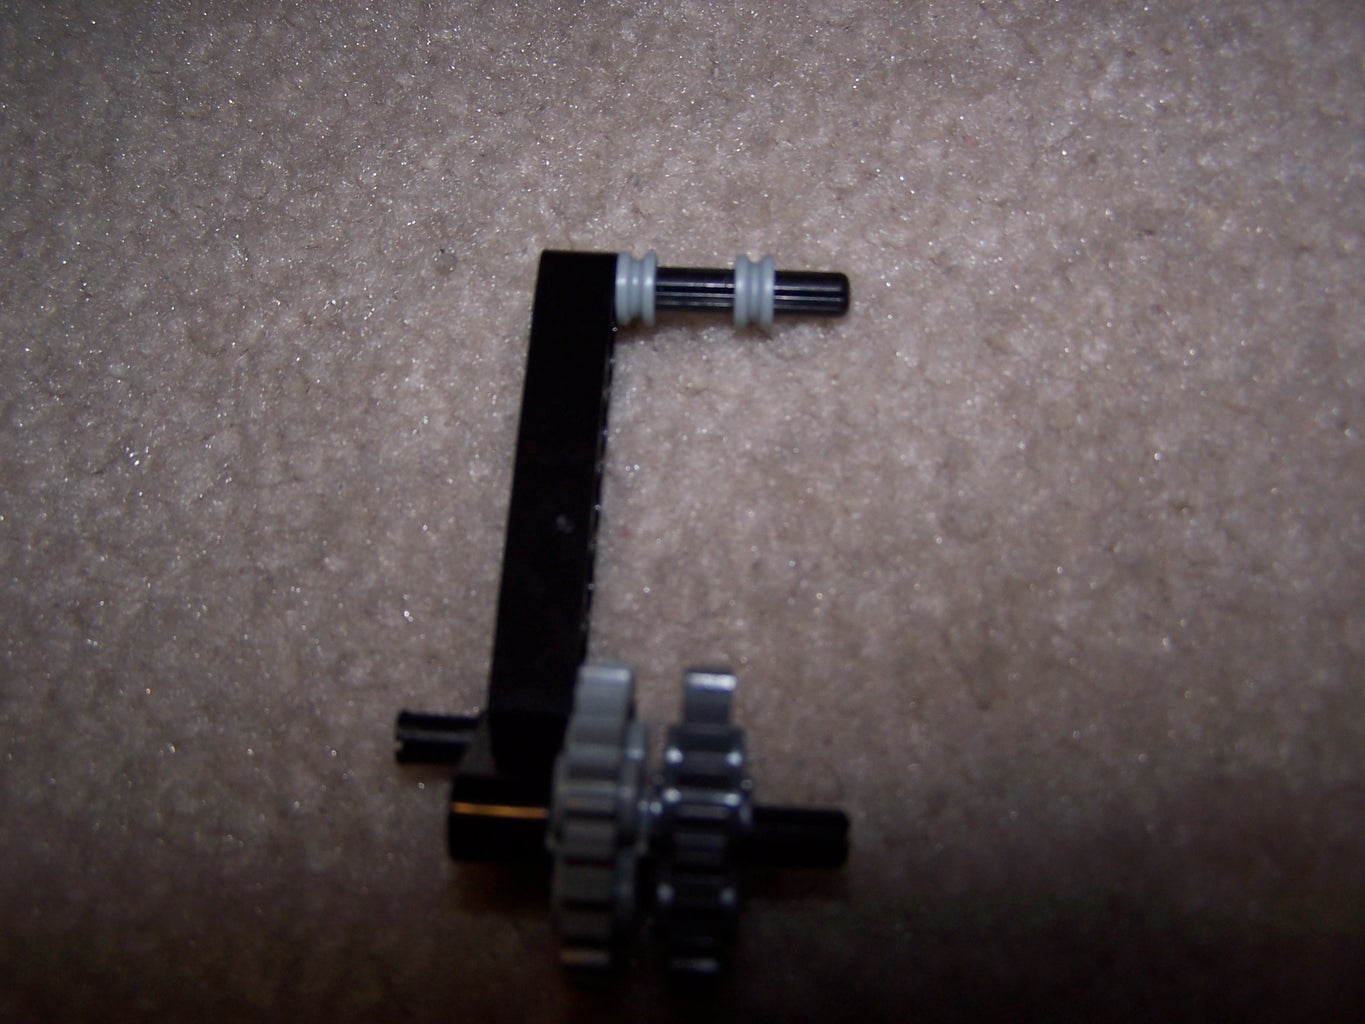 Half of the Trigger + Counterweight RB Holder